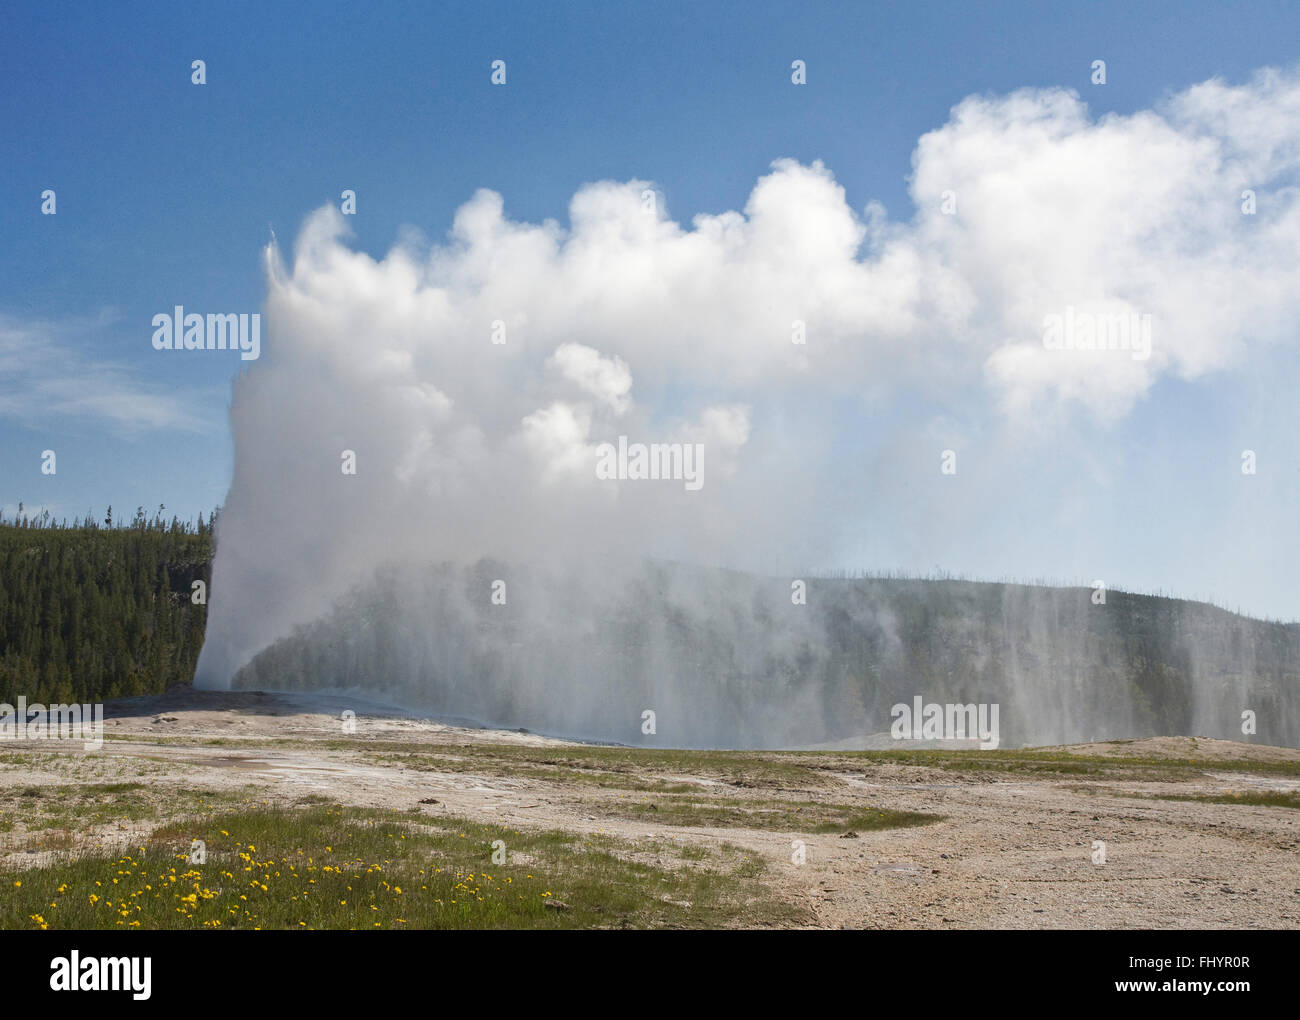 OLD FAITHFUL GEYSER erupts hourly sending as much as 8,400 gallons of boiling water 184 feet into the air - YELLOWSTONE - Stock Image